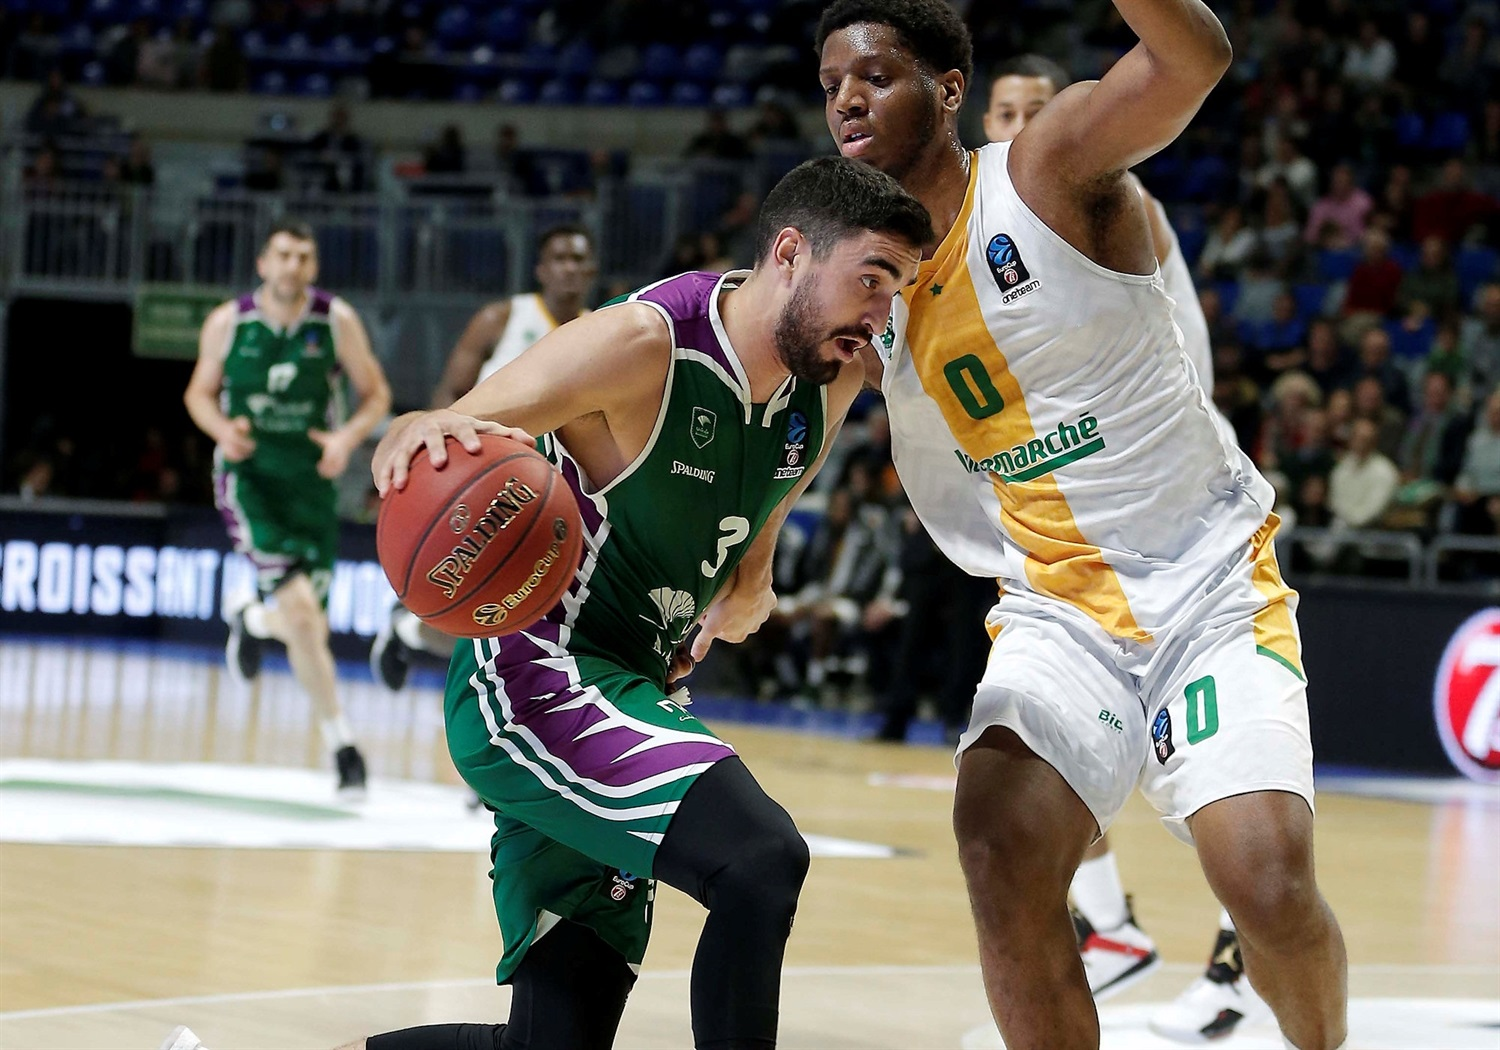 Jaime Fernandez - Unicaja Malaga (photo Unicaja) - EC18